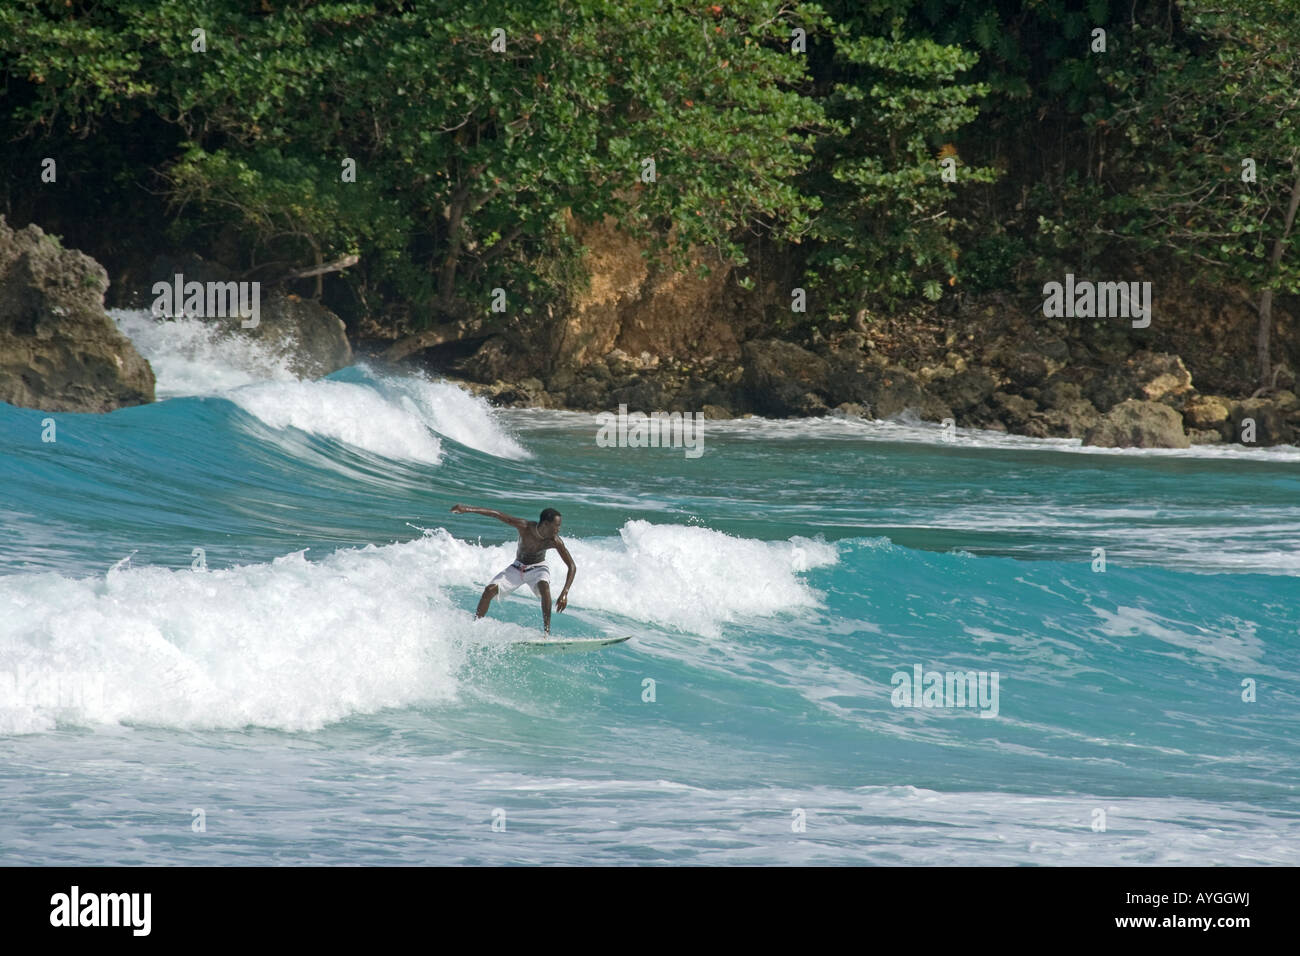 Jamaica Boston bay surfer - Stock Image